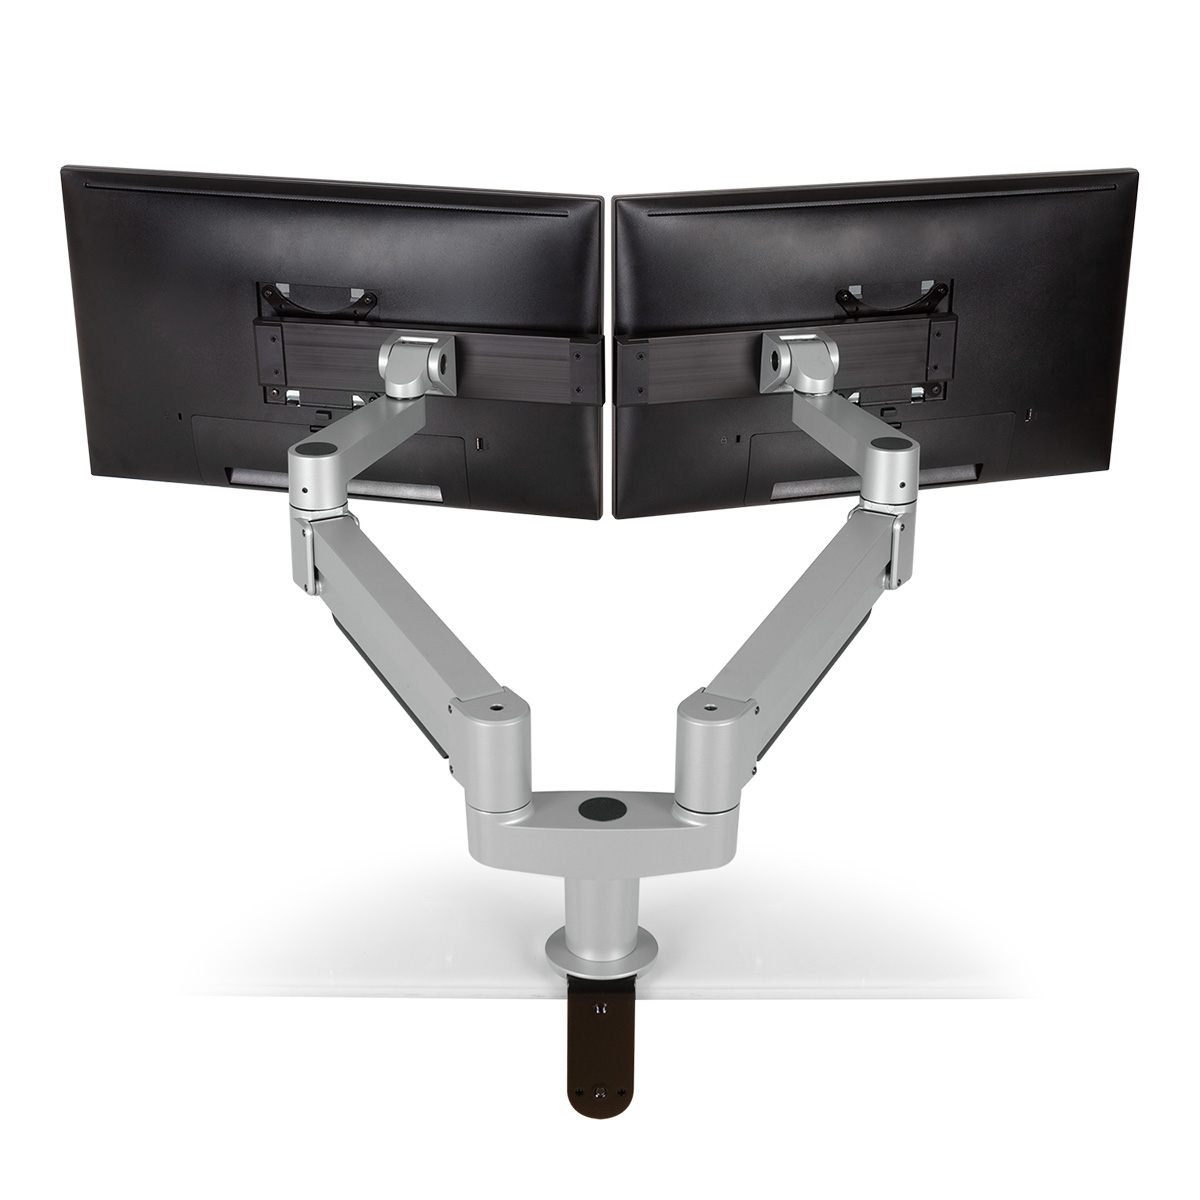 HAT Collective ergonomic monitor arms